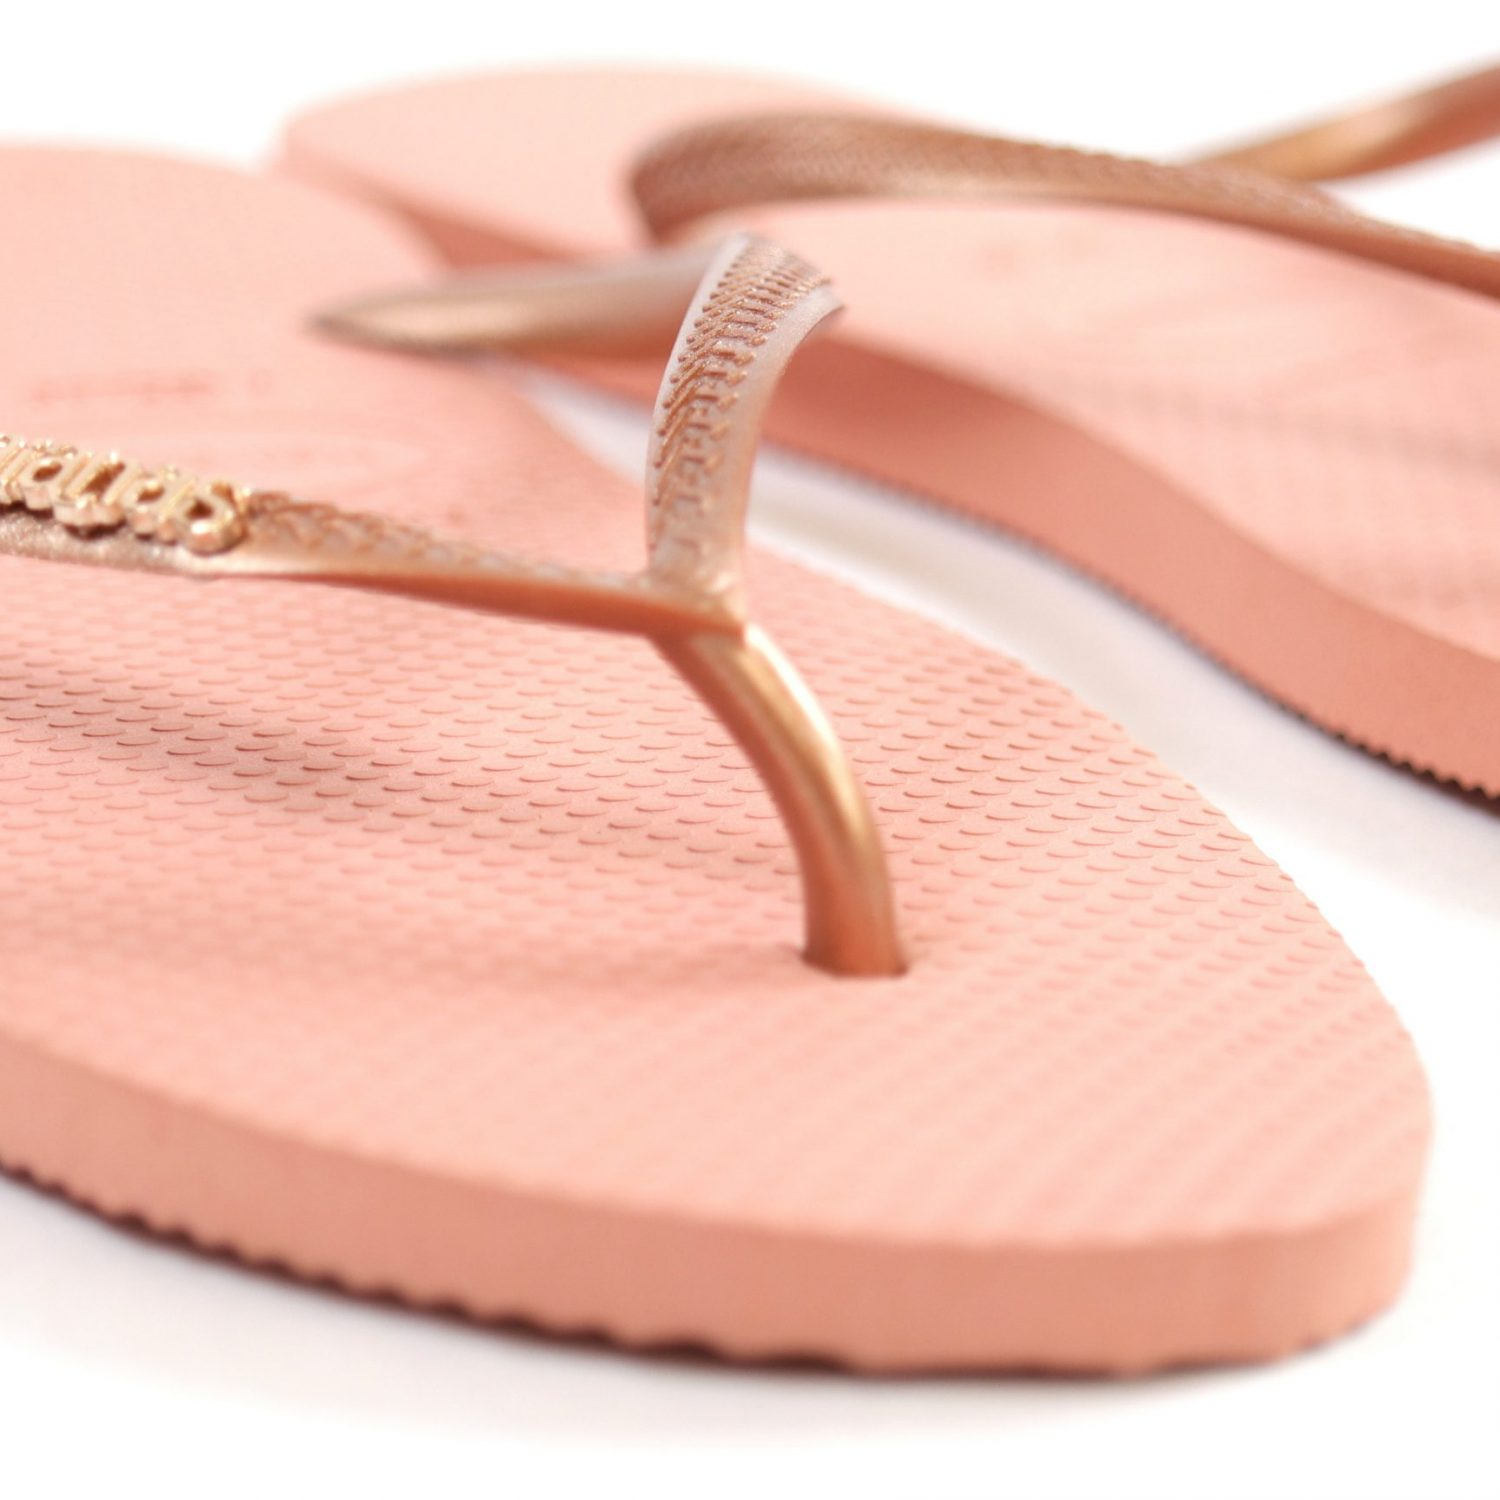 IMG_6882_Flip Flops_Strand_Sandalen_Sandals_Damen_Way back to you